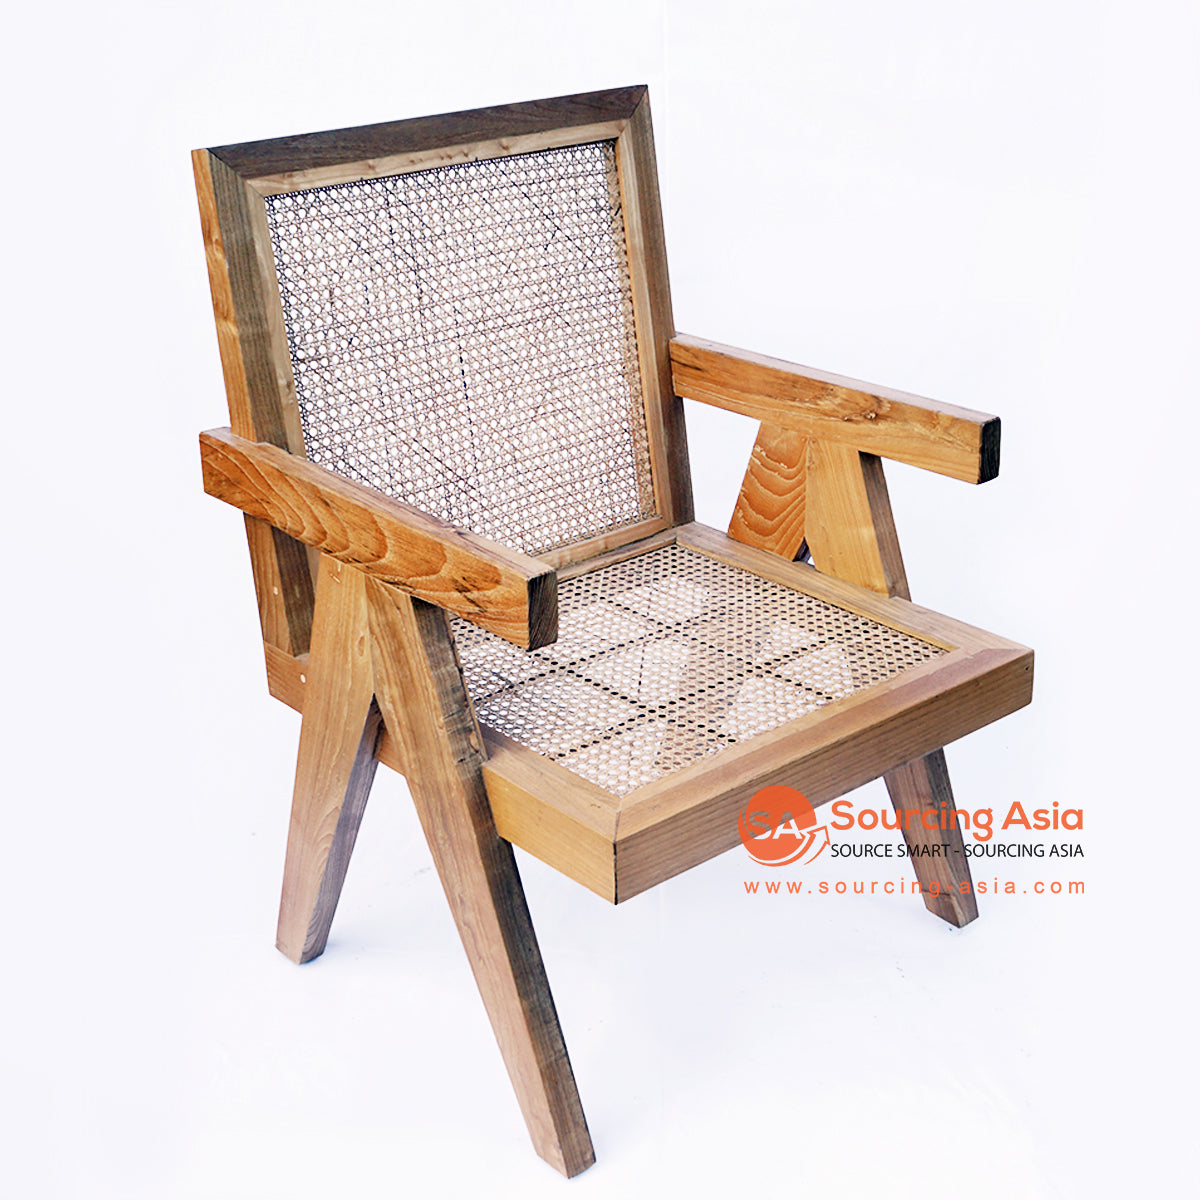 BNTC001-19 RATTAN AND TEAK WOOD DINING CHAIR